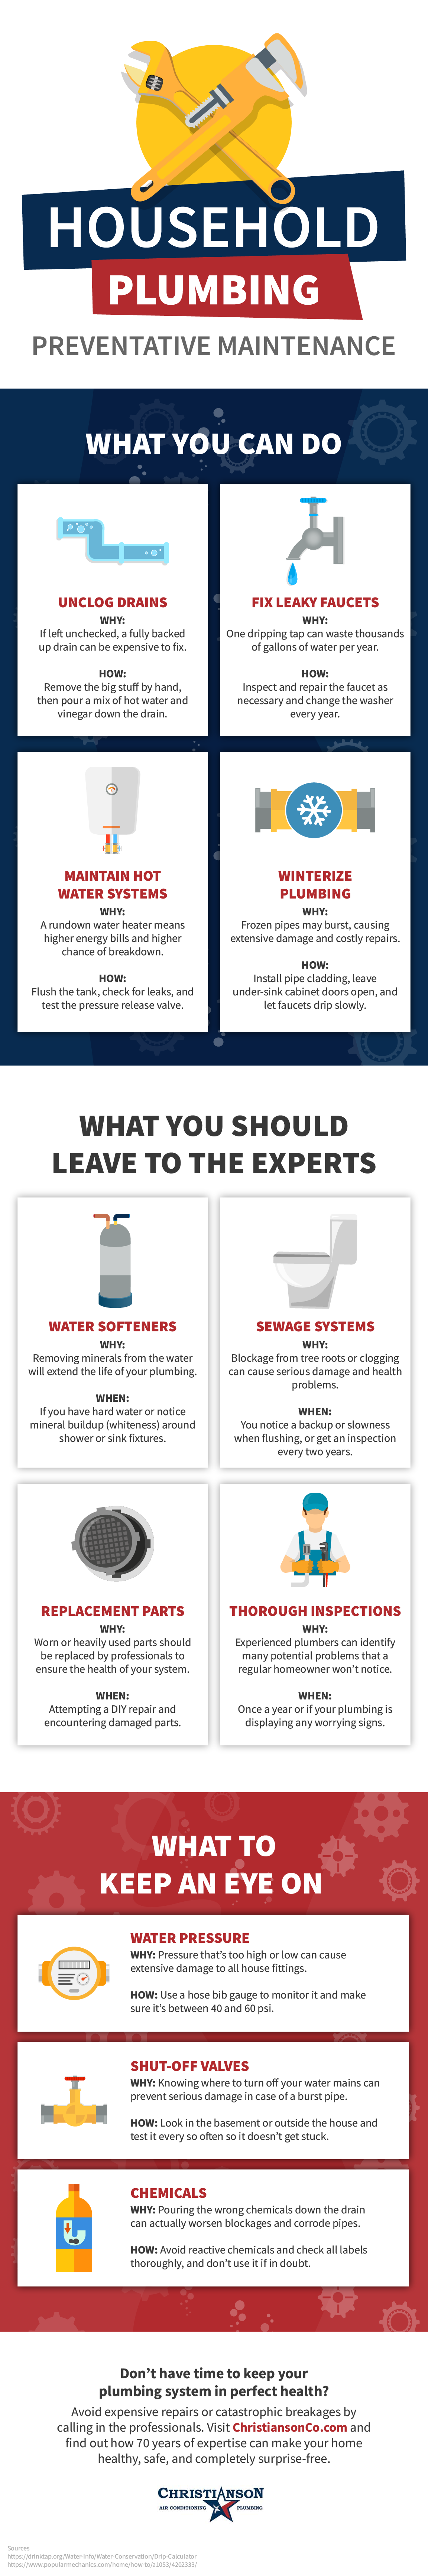 Household Plumbing Preventative Maintenance Infographic